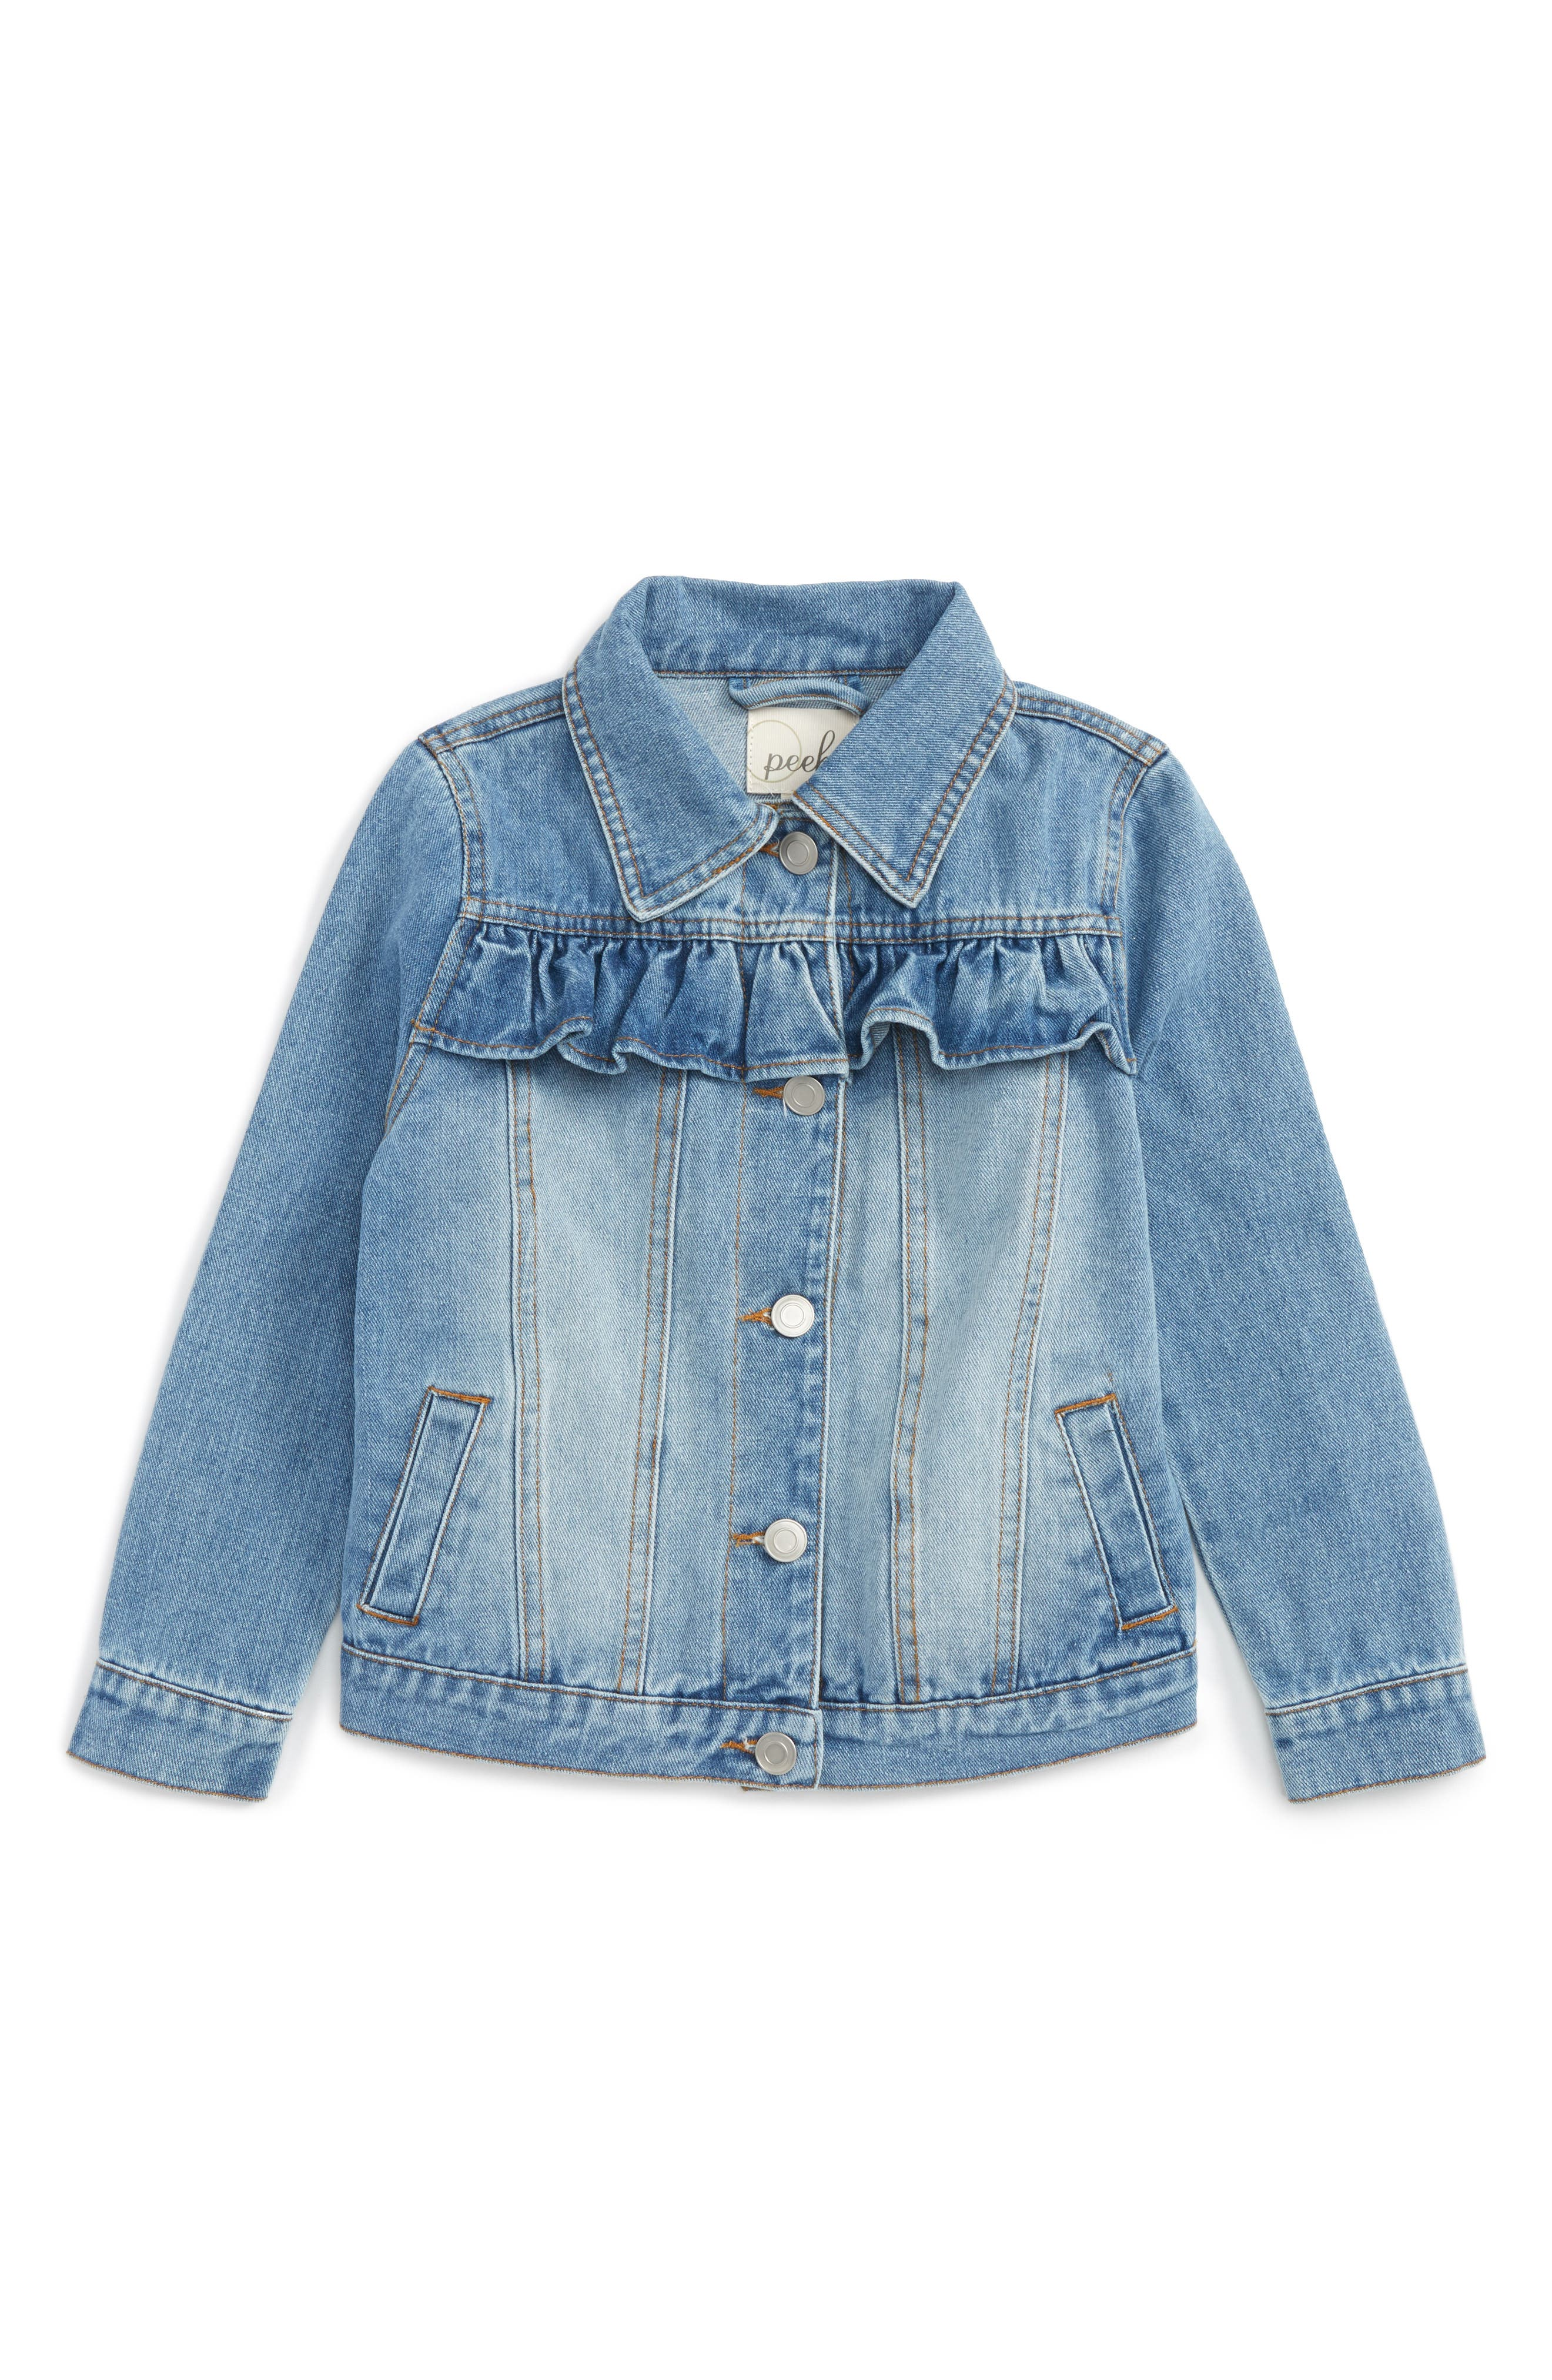 Peek Whitney Ruffle Denim Jacket (Toddler Girls, Little Girls & Big Girls)